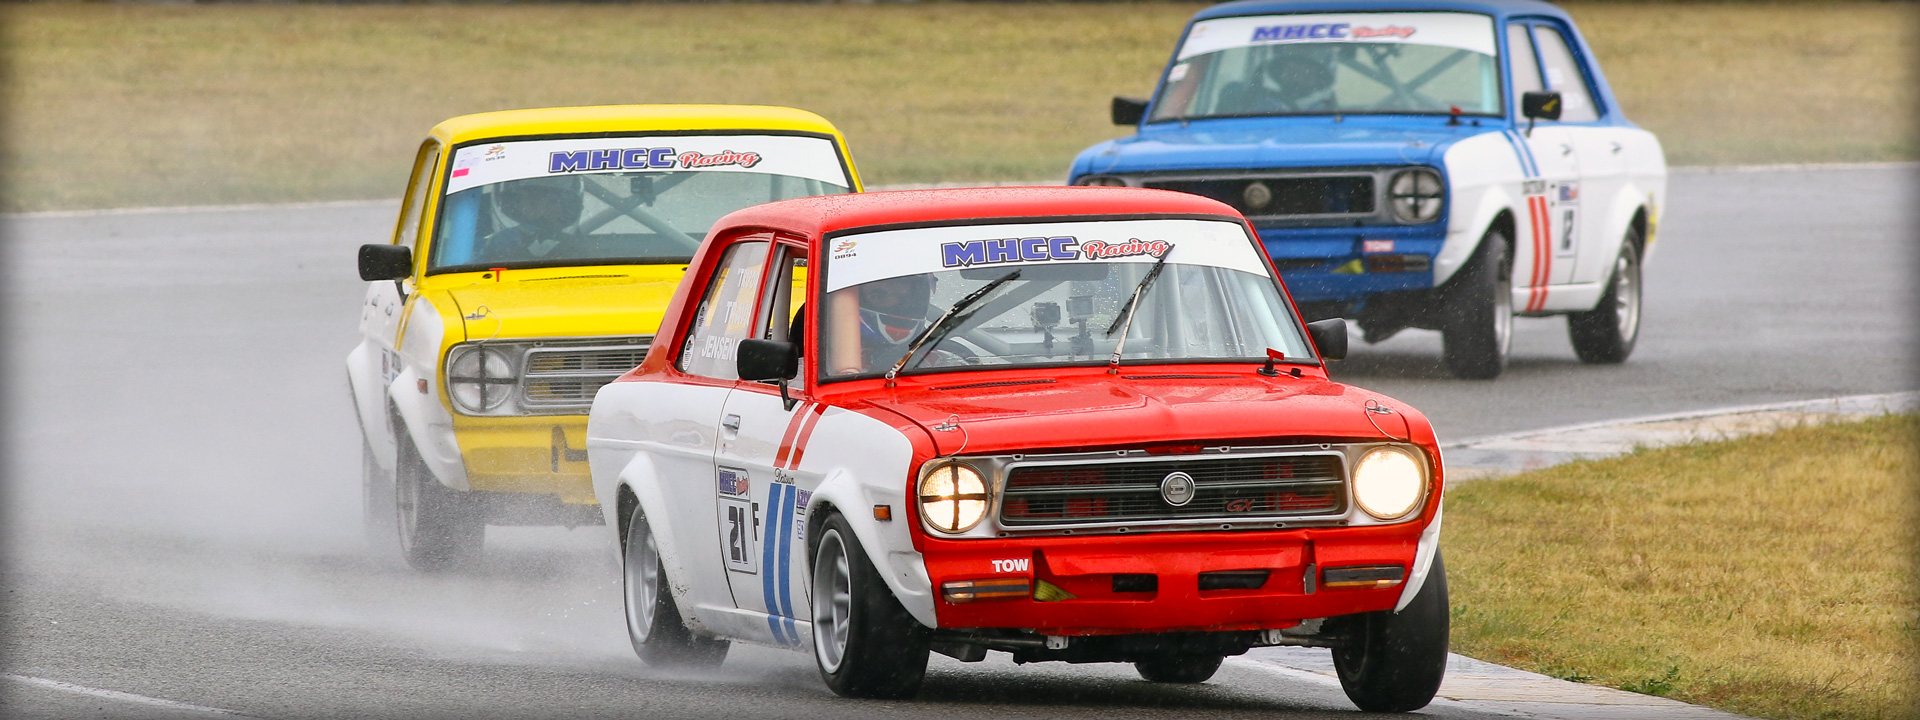 Inland Championship - Round 4 - Phakisa Freeway - 2017-05-13 - Photographs